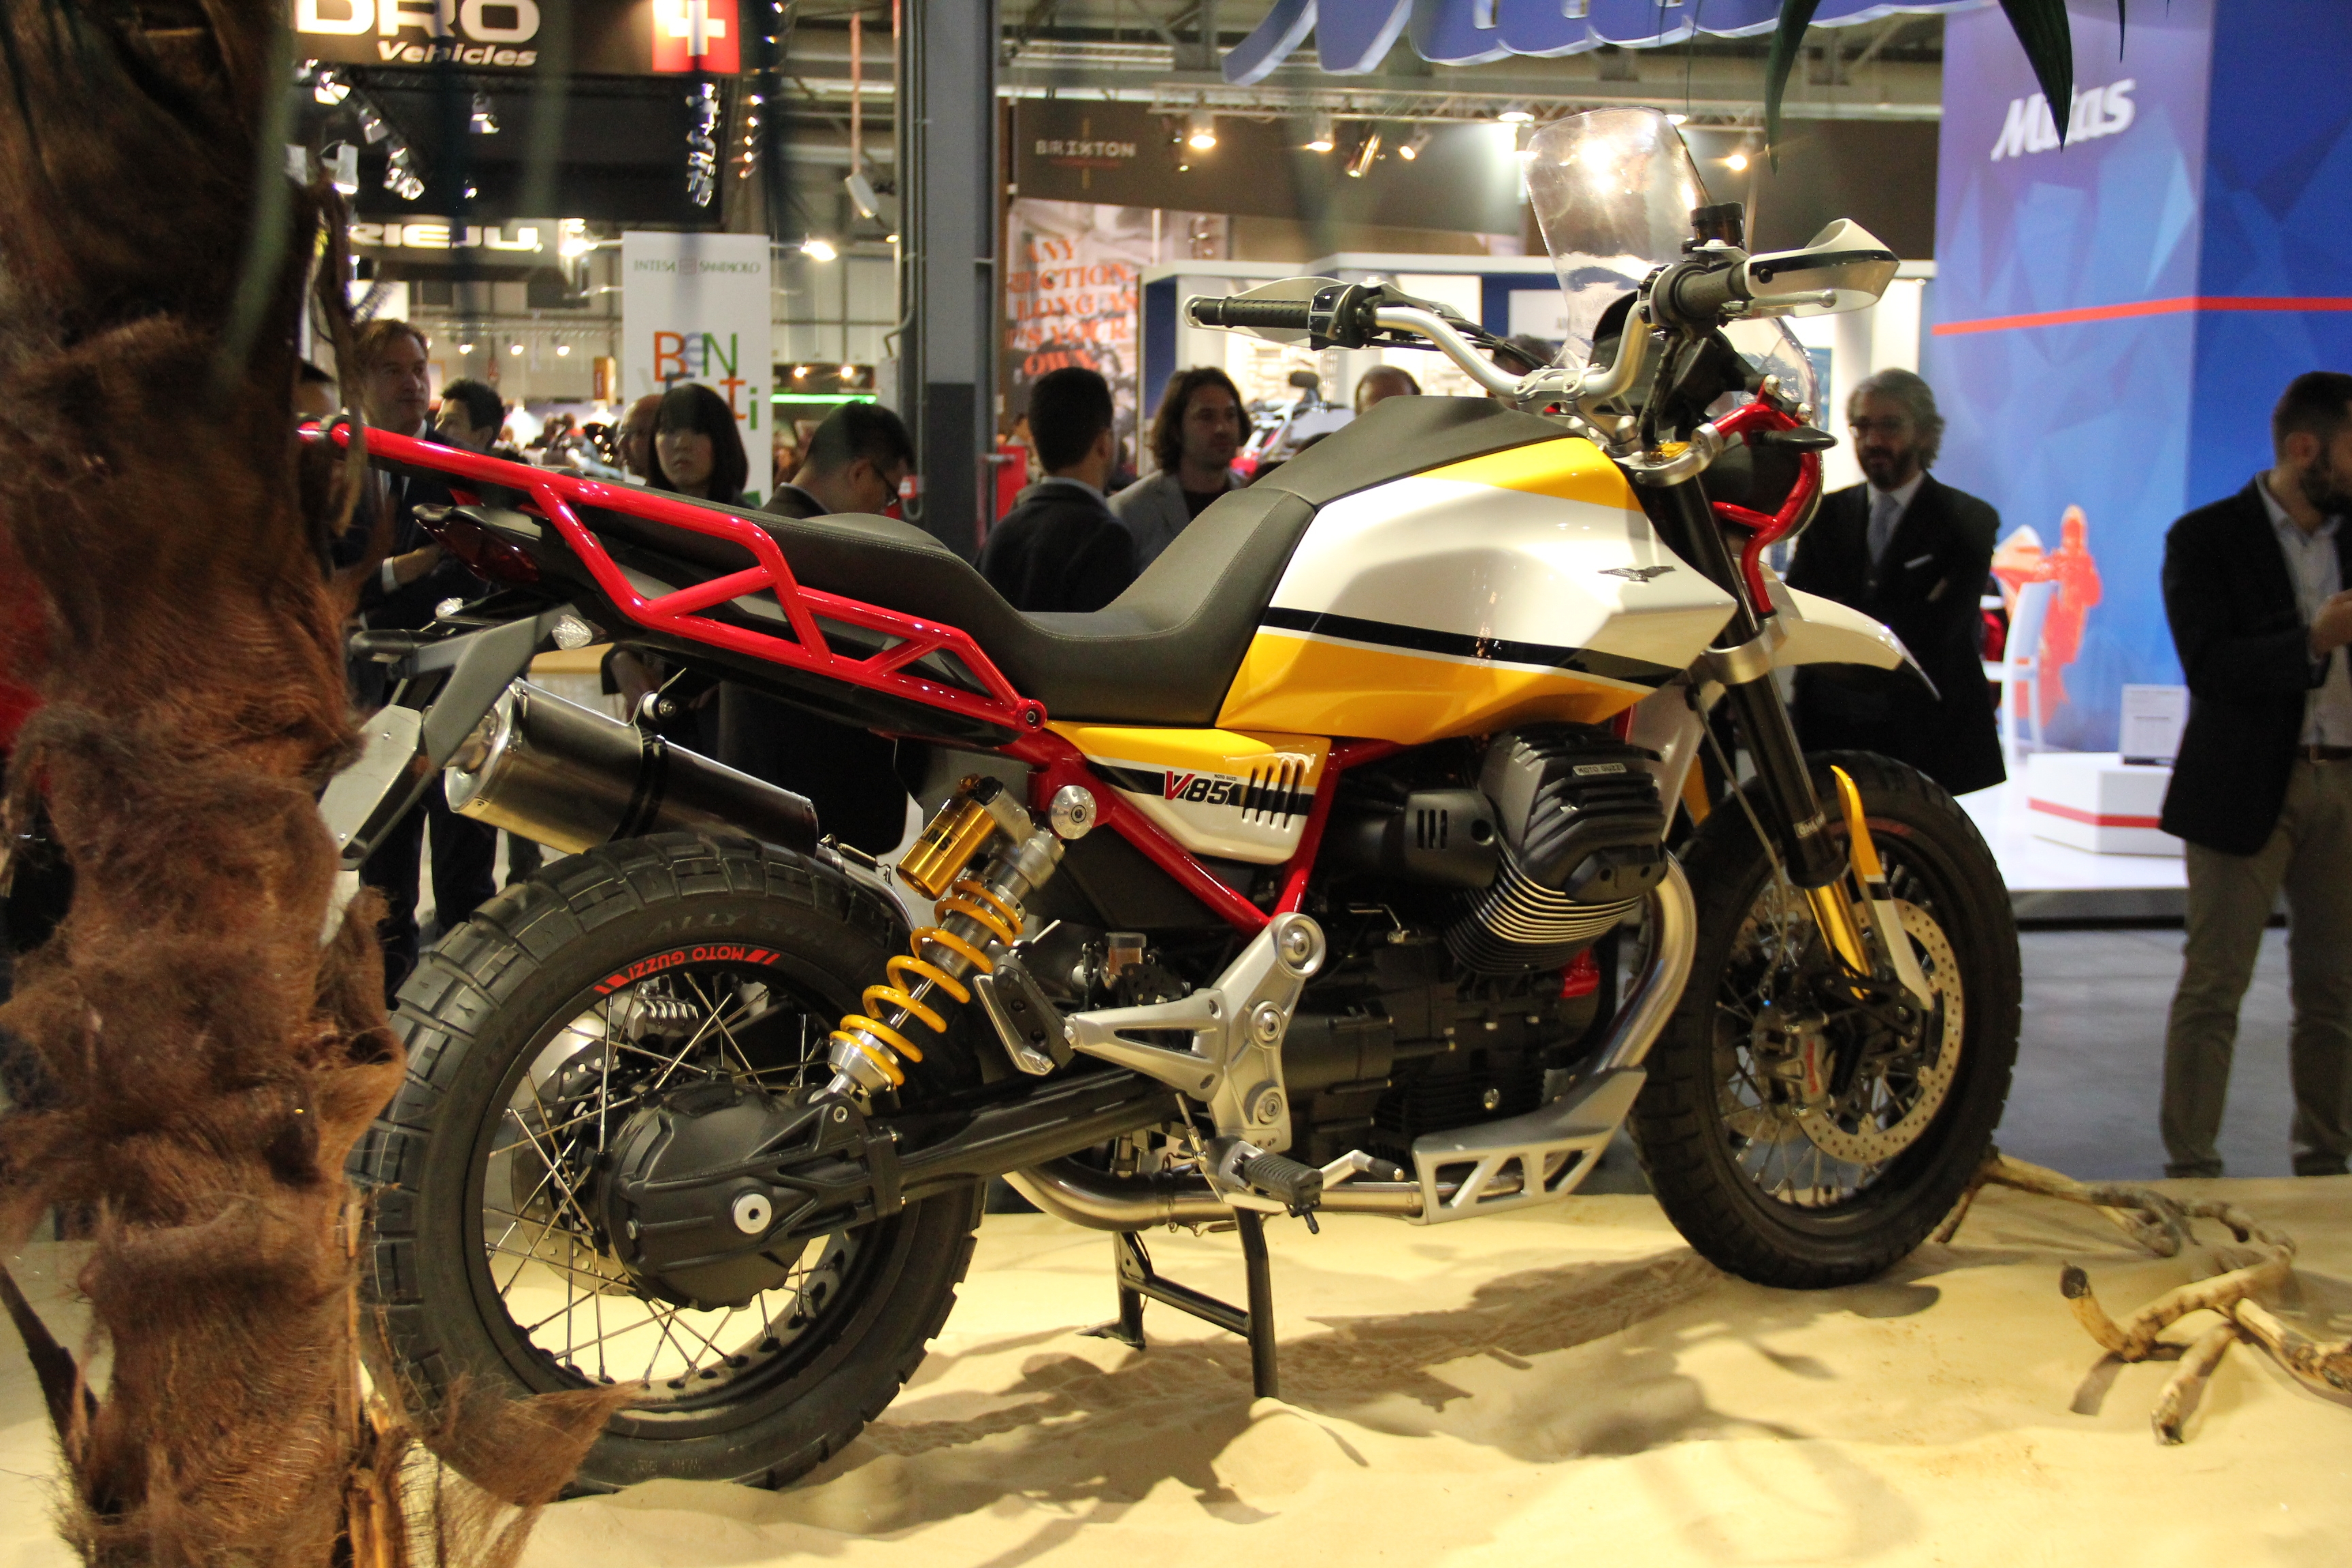 S0-salon-de-milan-2017-en-direct-moto-guzzi-v85-535517.jpg